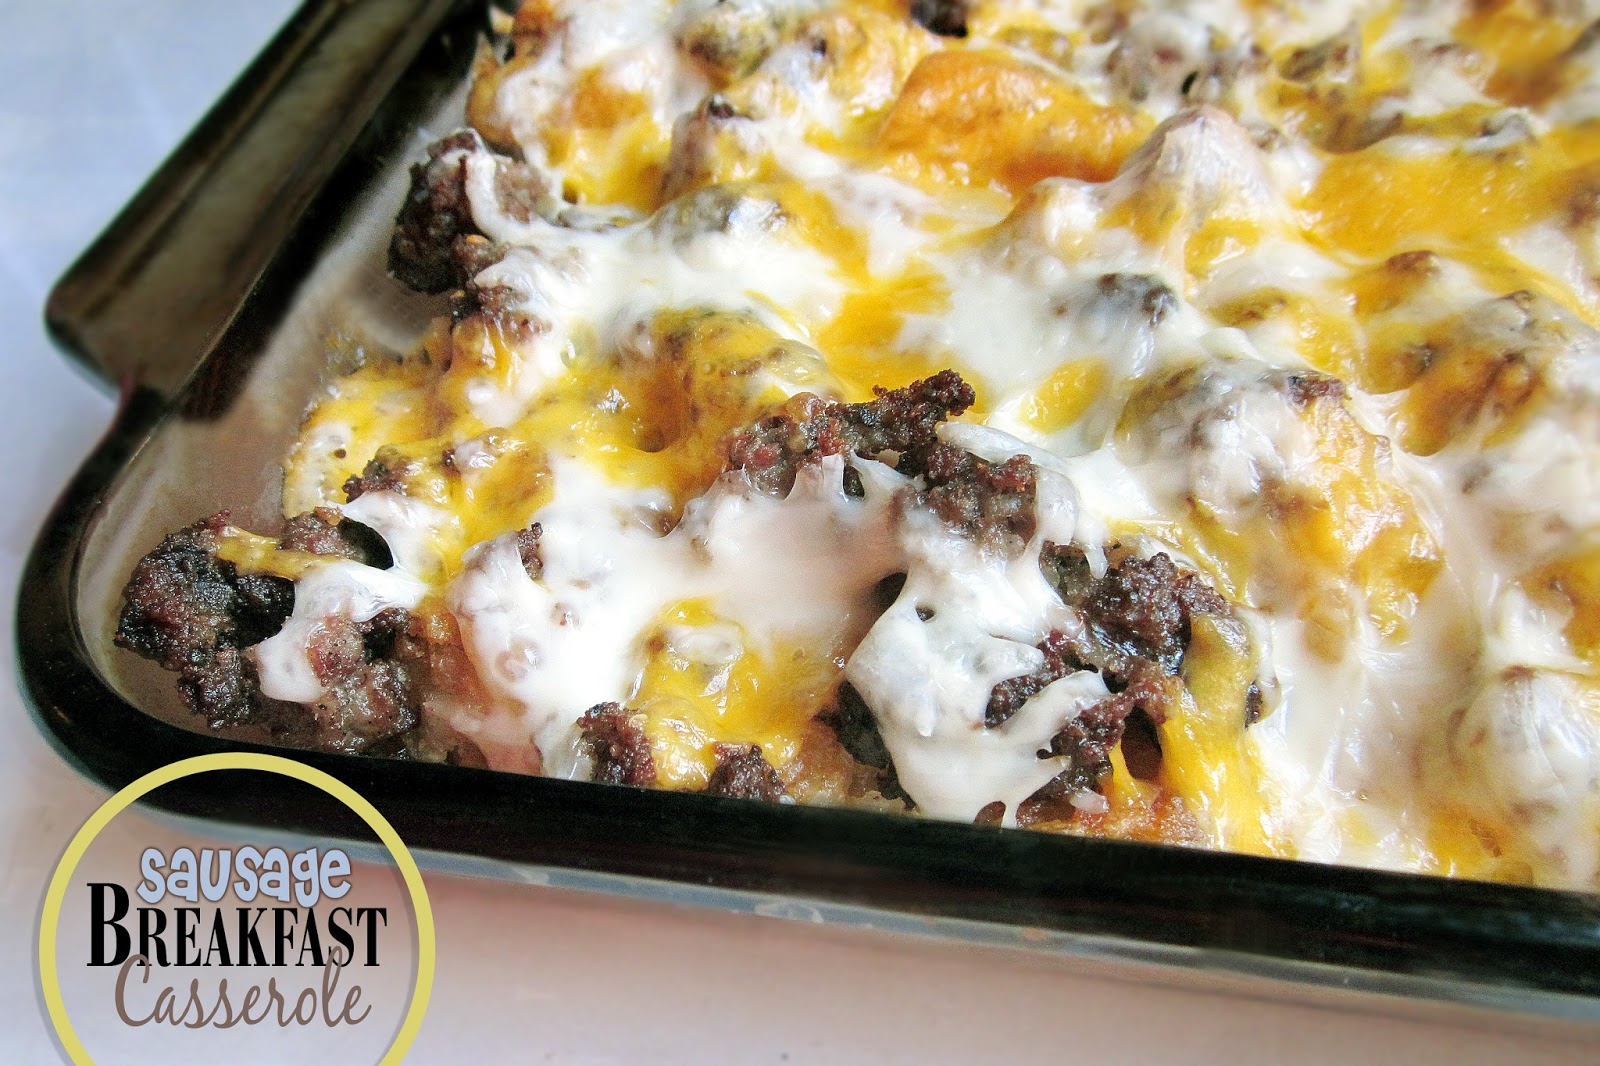 Diddles and Dumplings: Sausage Breakfast Casserole